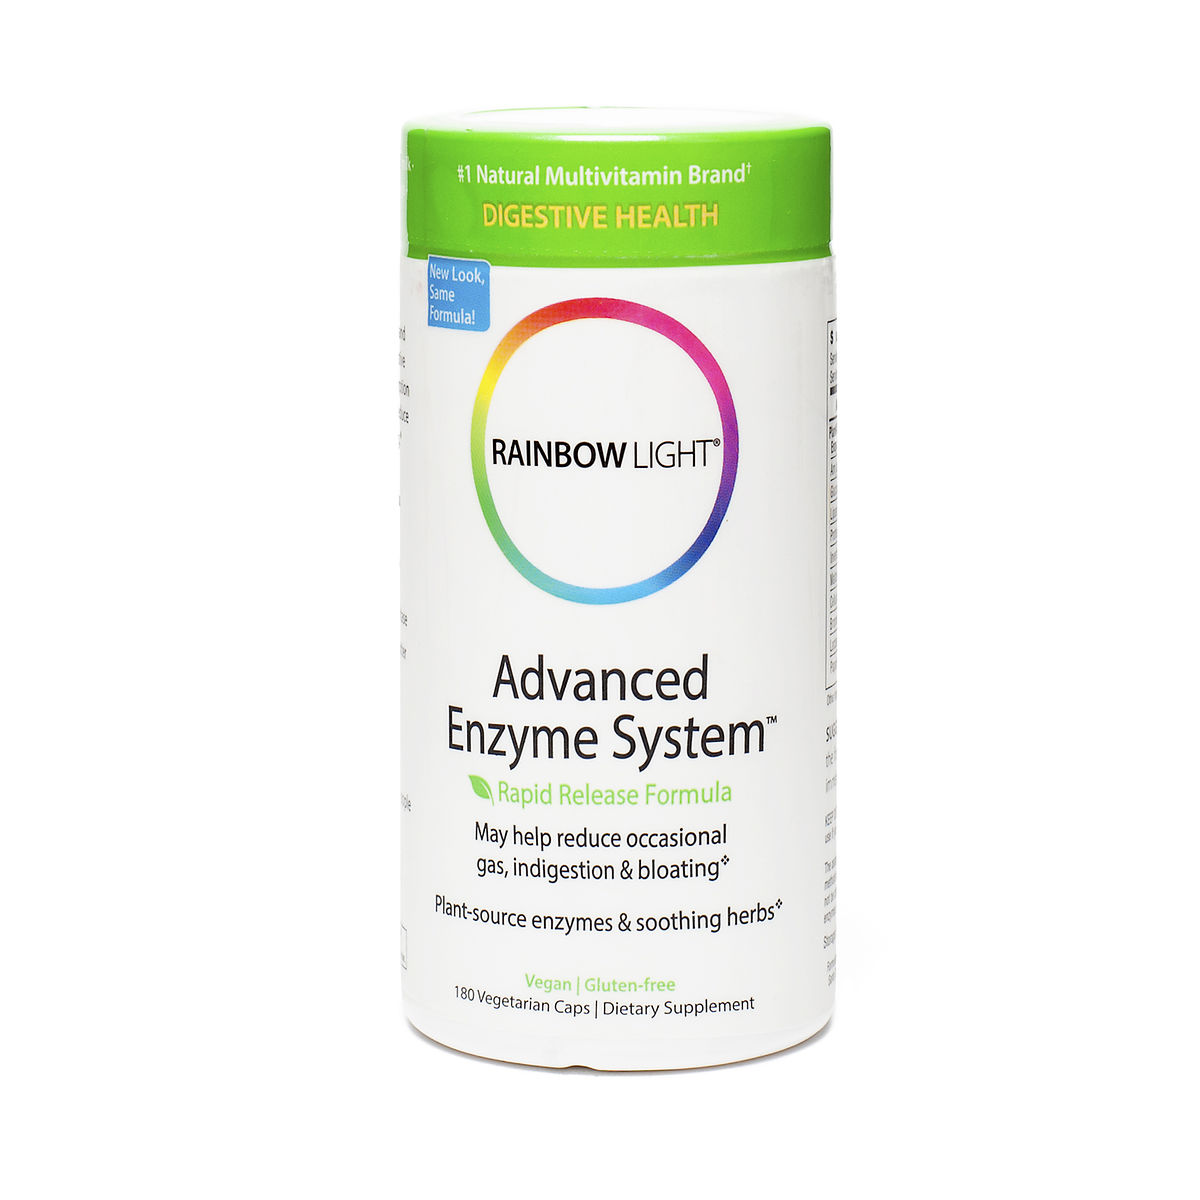 rainbow light advanced enzyme system dietary findamentals thrive. Black Bedroom Furniture Sets. Home Design Ideas